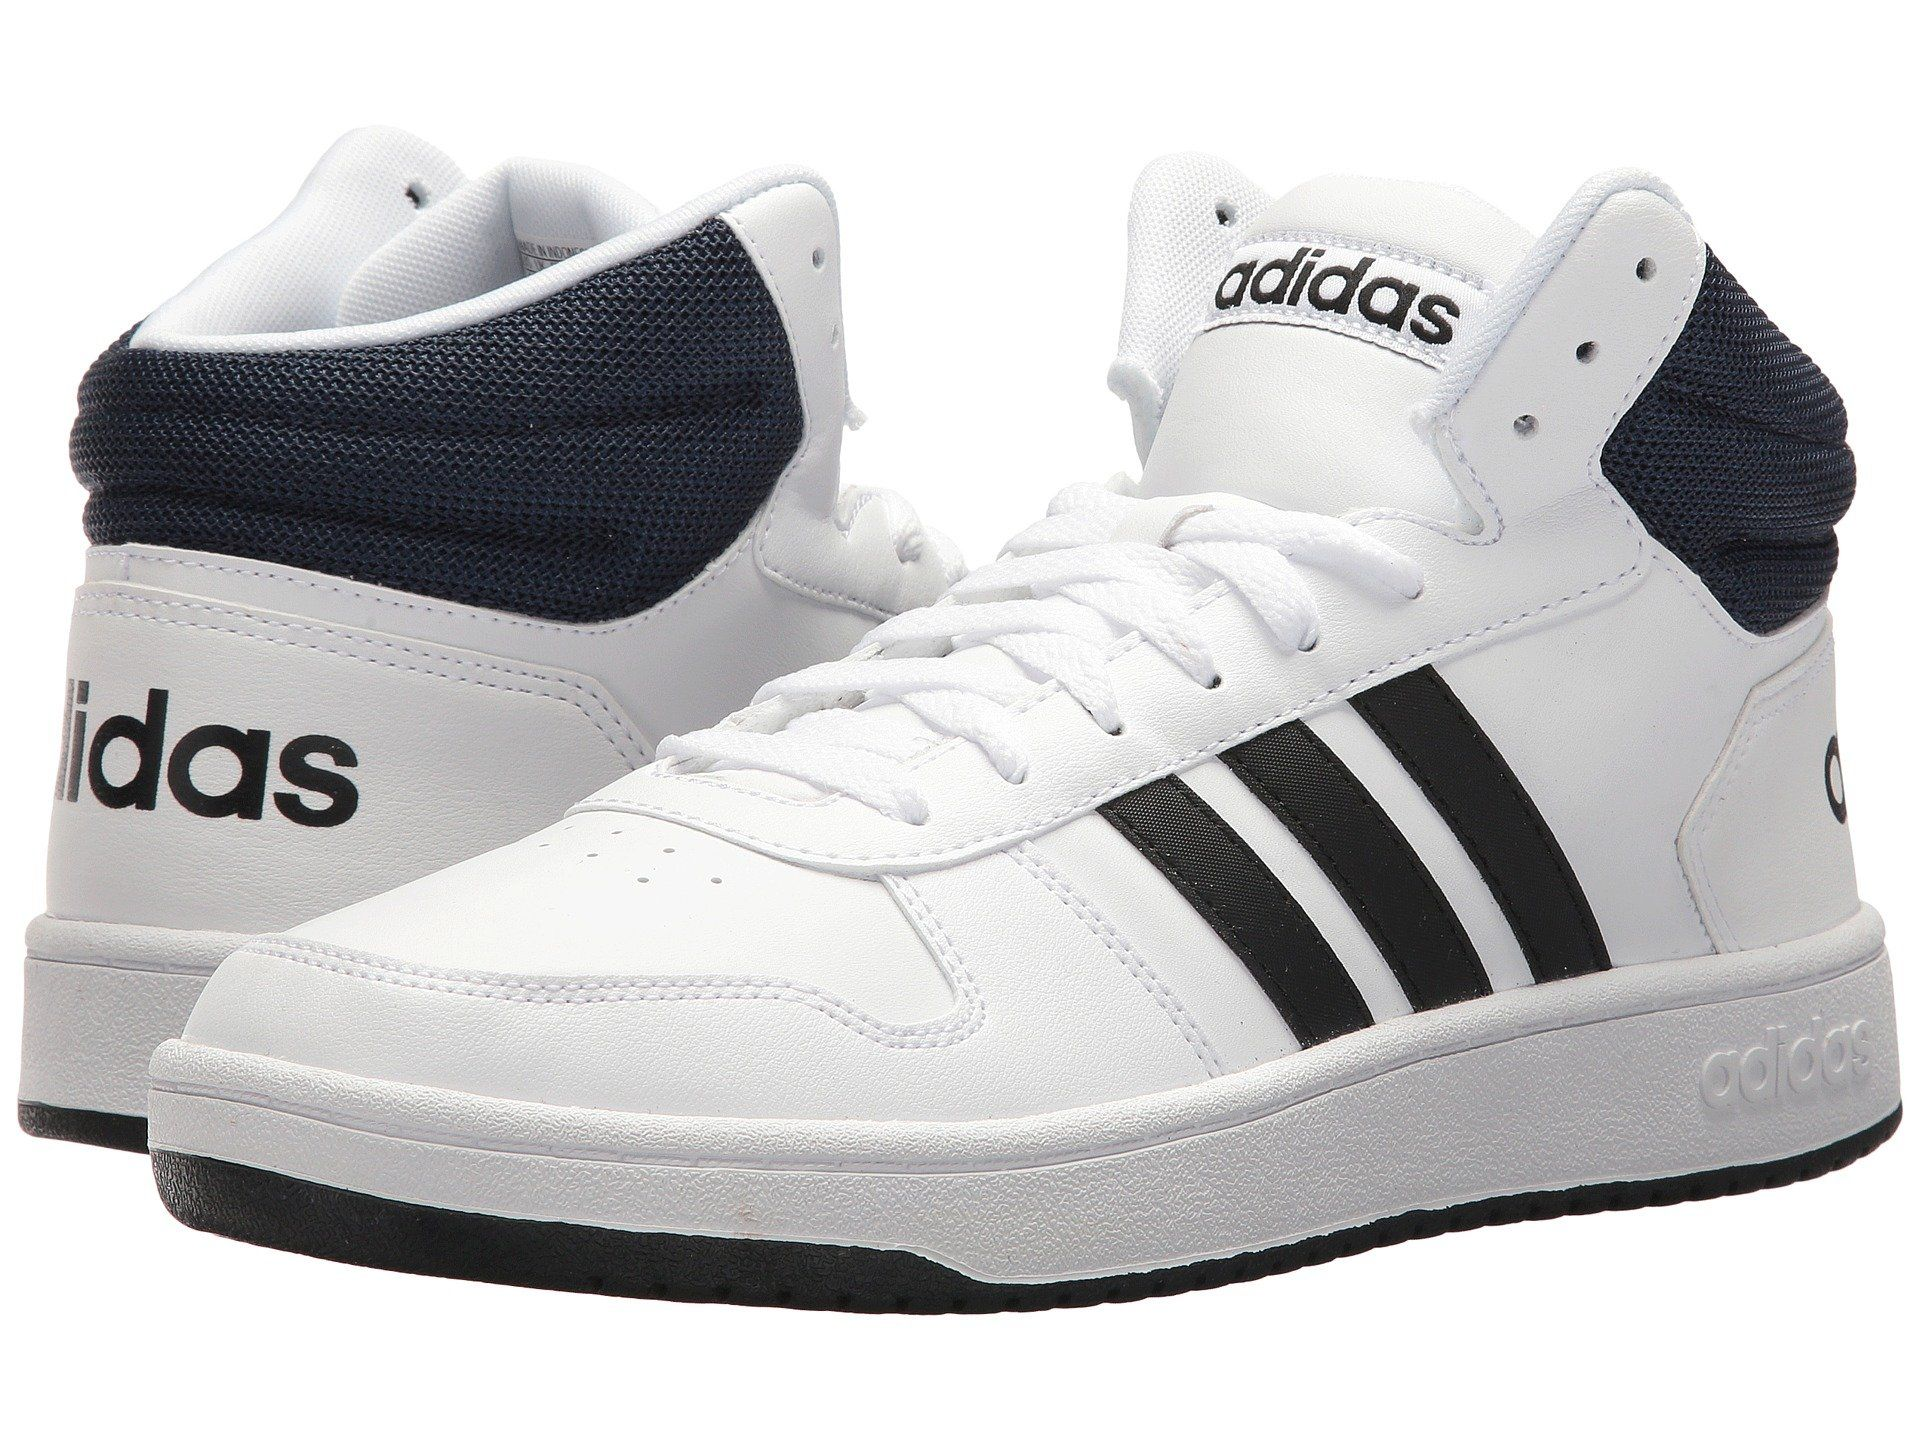 uk availability c3c80 5127b ADIDAS ORIGINALS VS Hoops Mid 2.0. adidasoriginals shoes